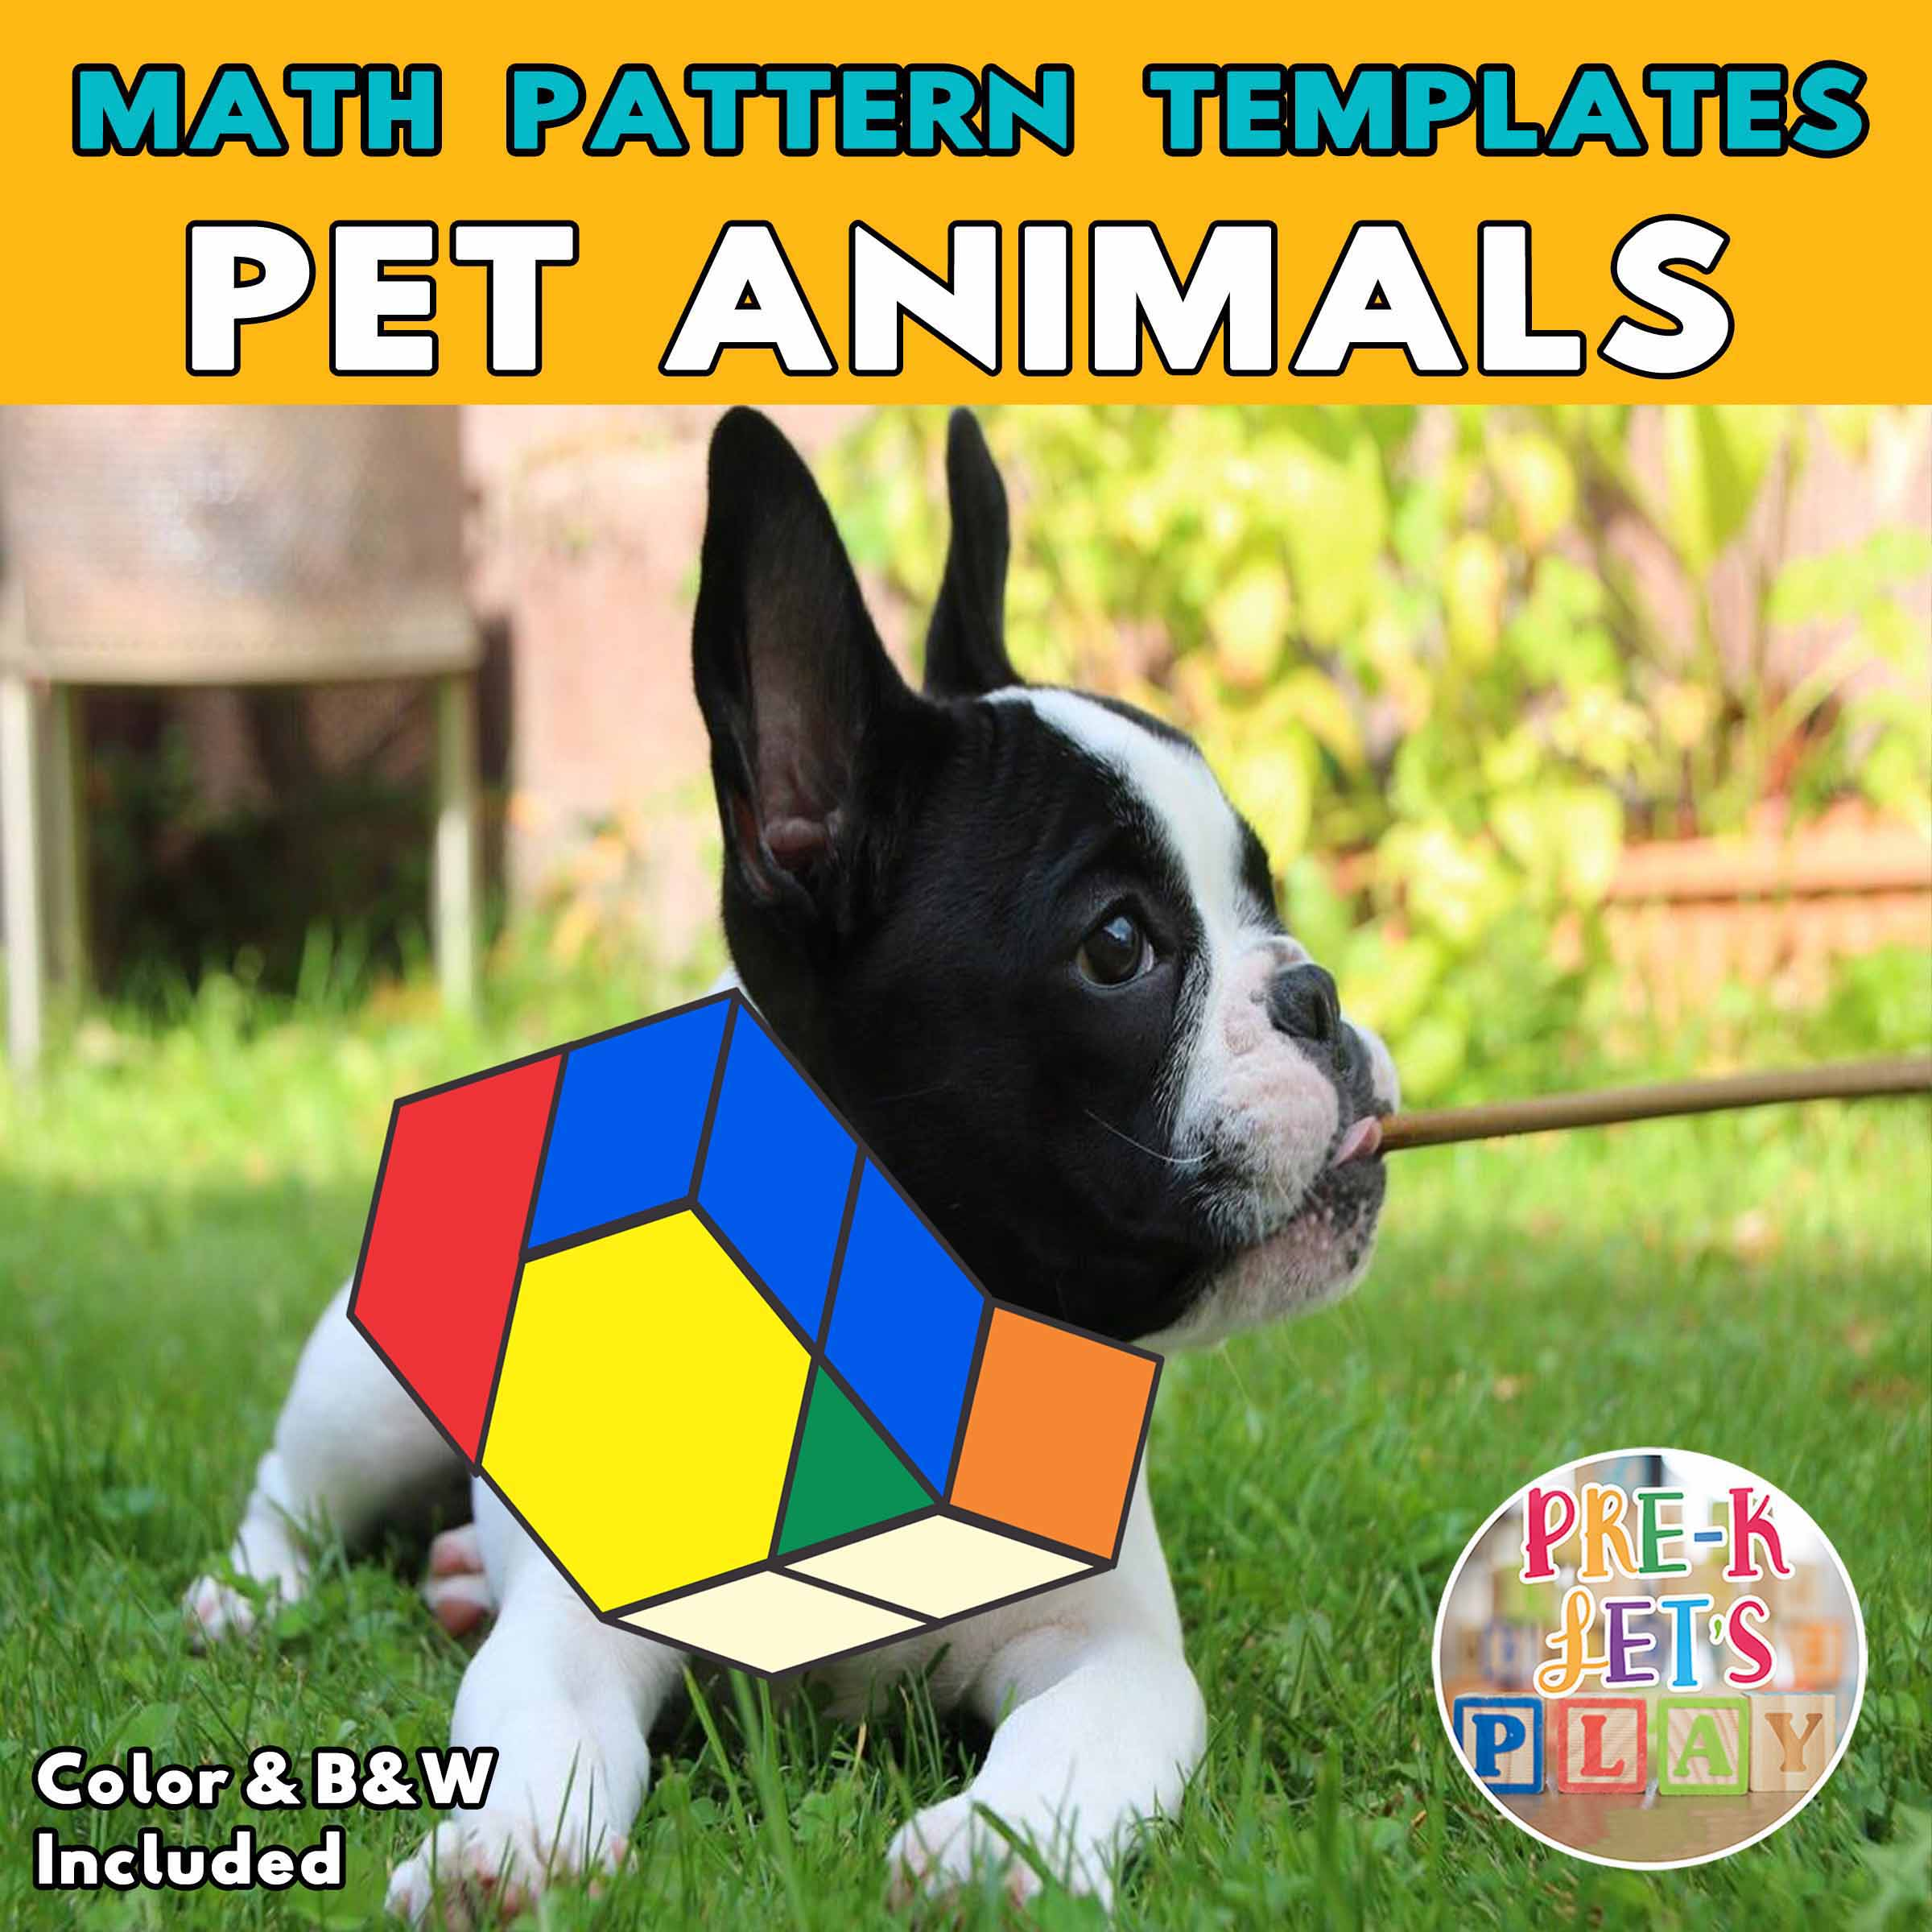 Cover of dog with the body made up of colored math block patterns